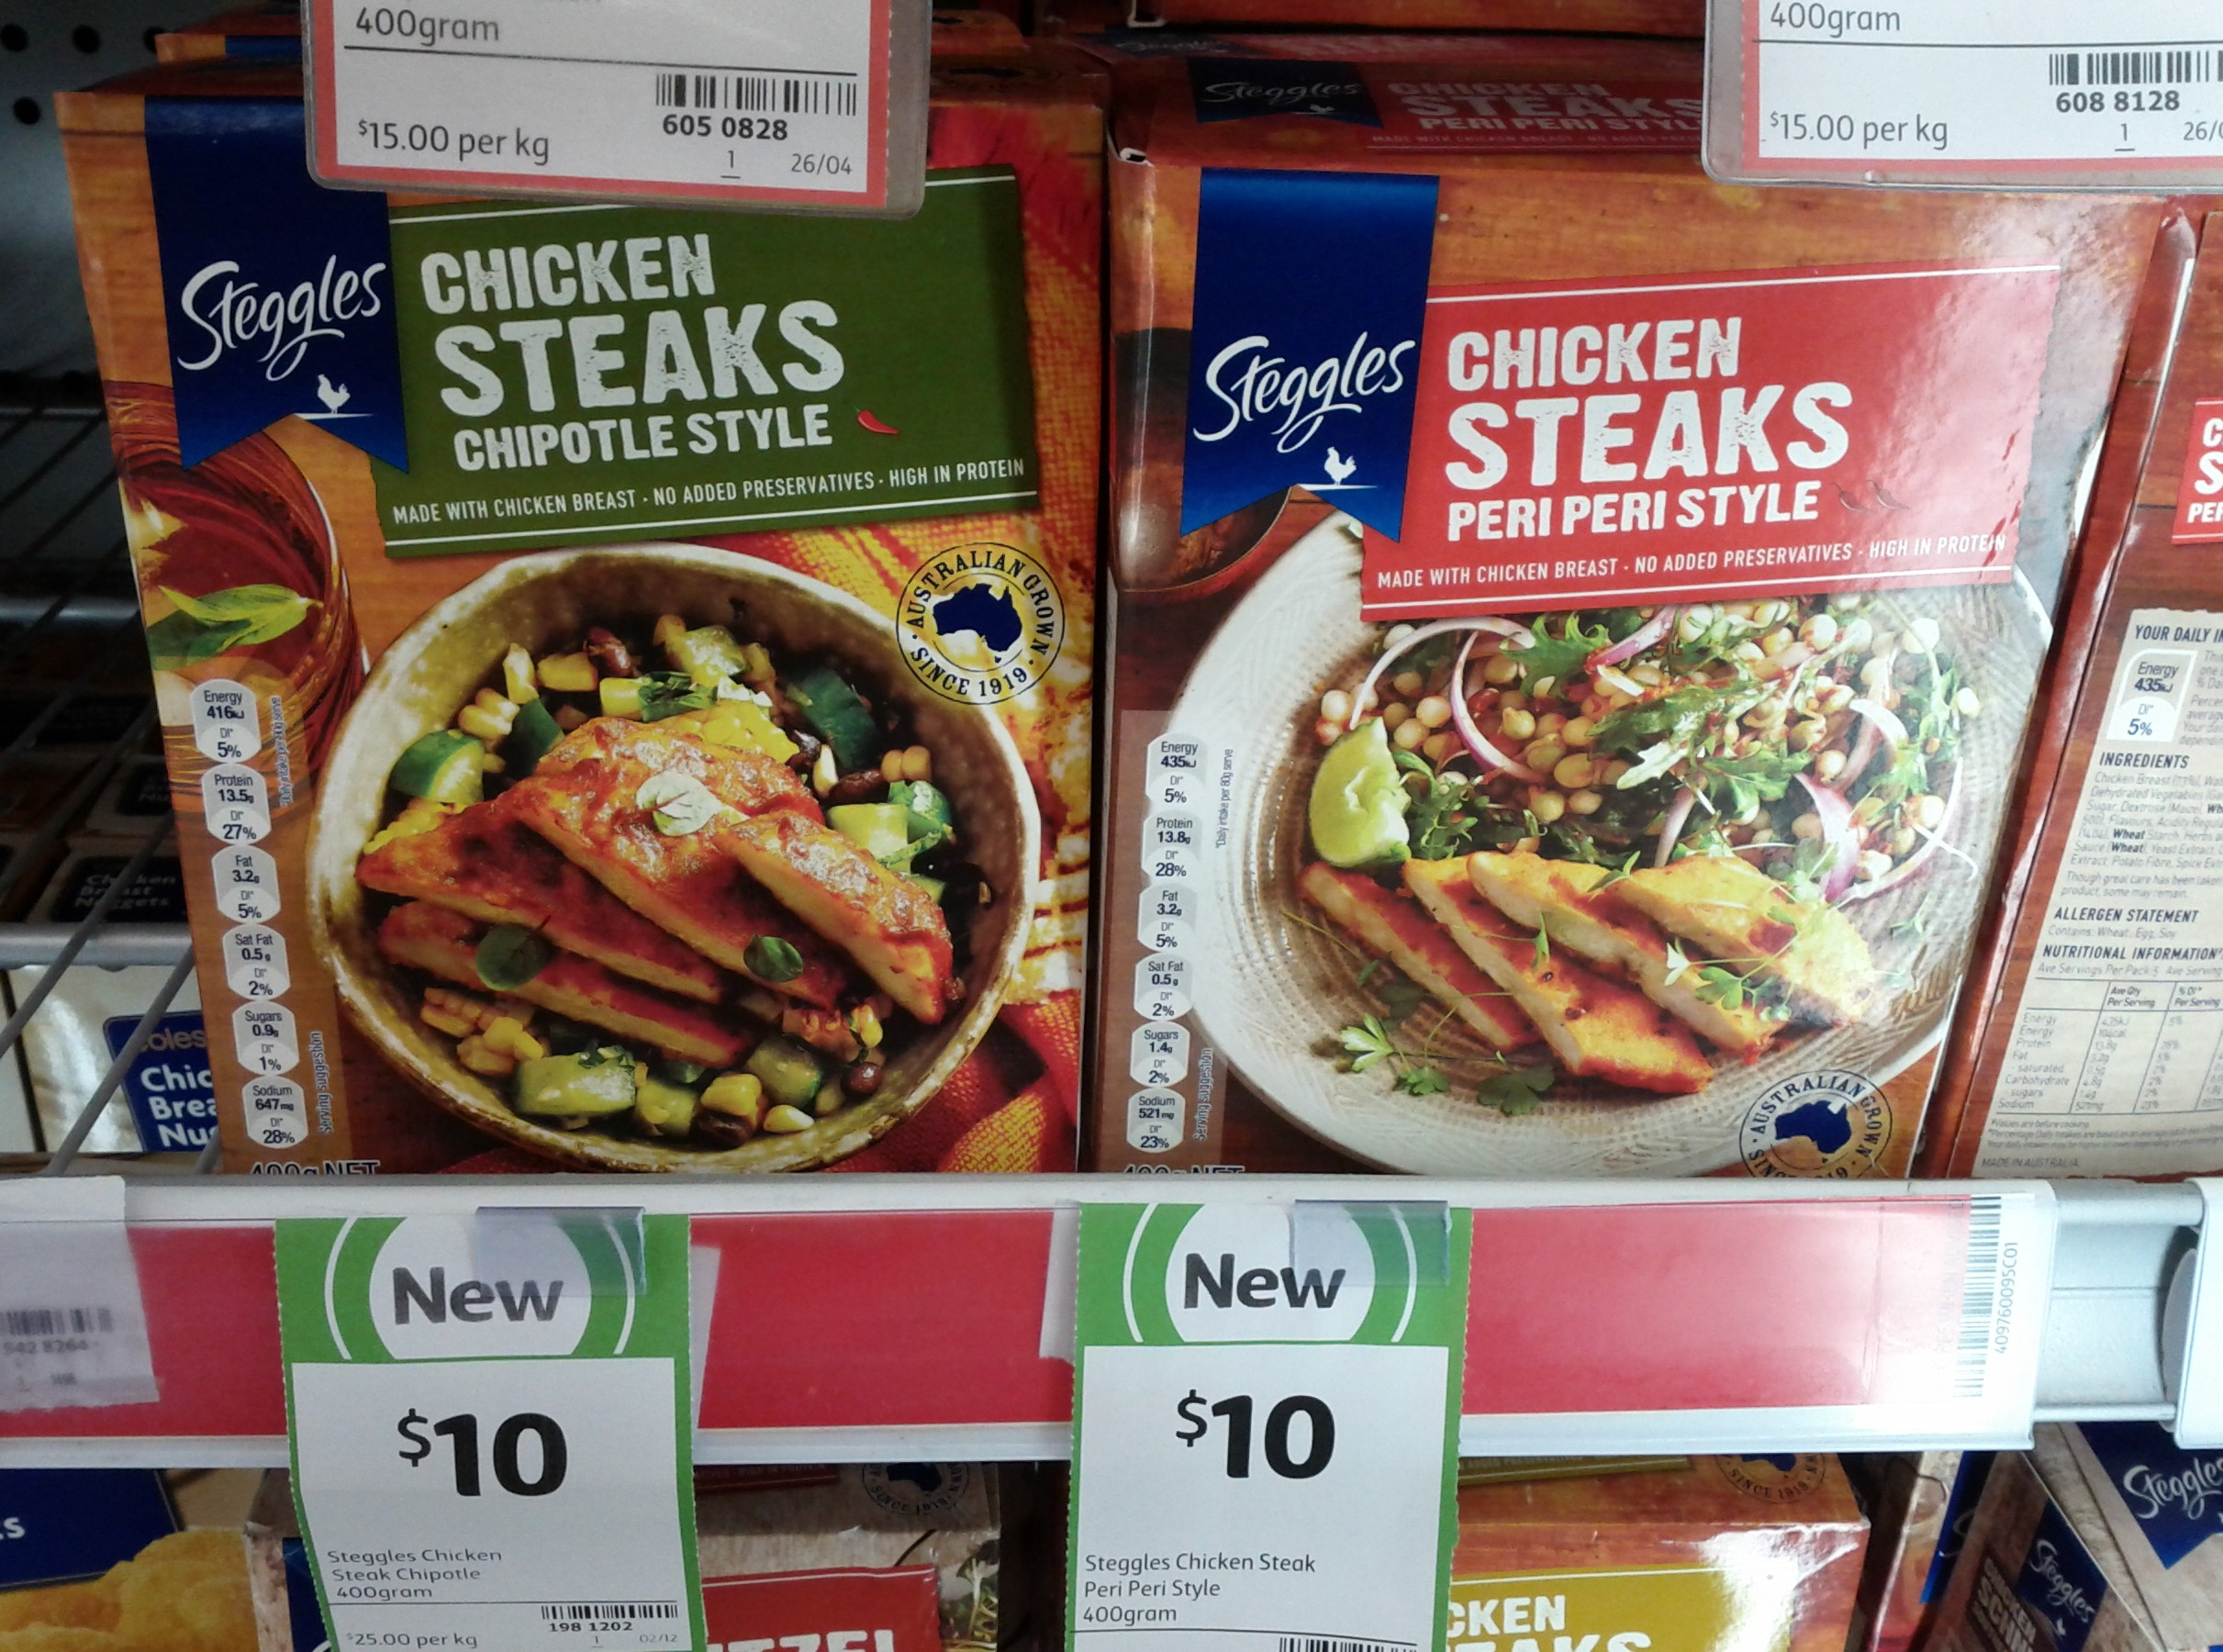 Steggles 400g Chicken Steaks Chipotle Style, Peri Peri Style